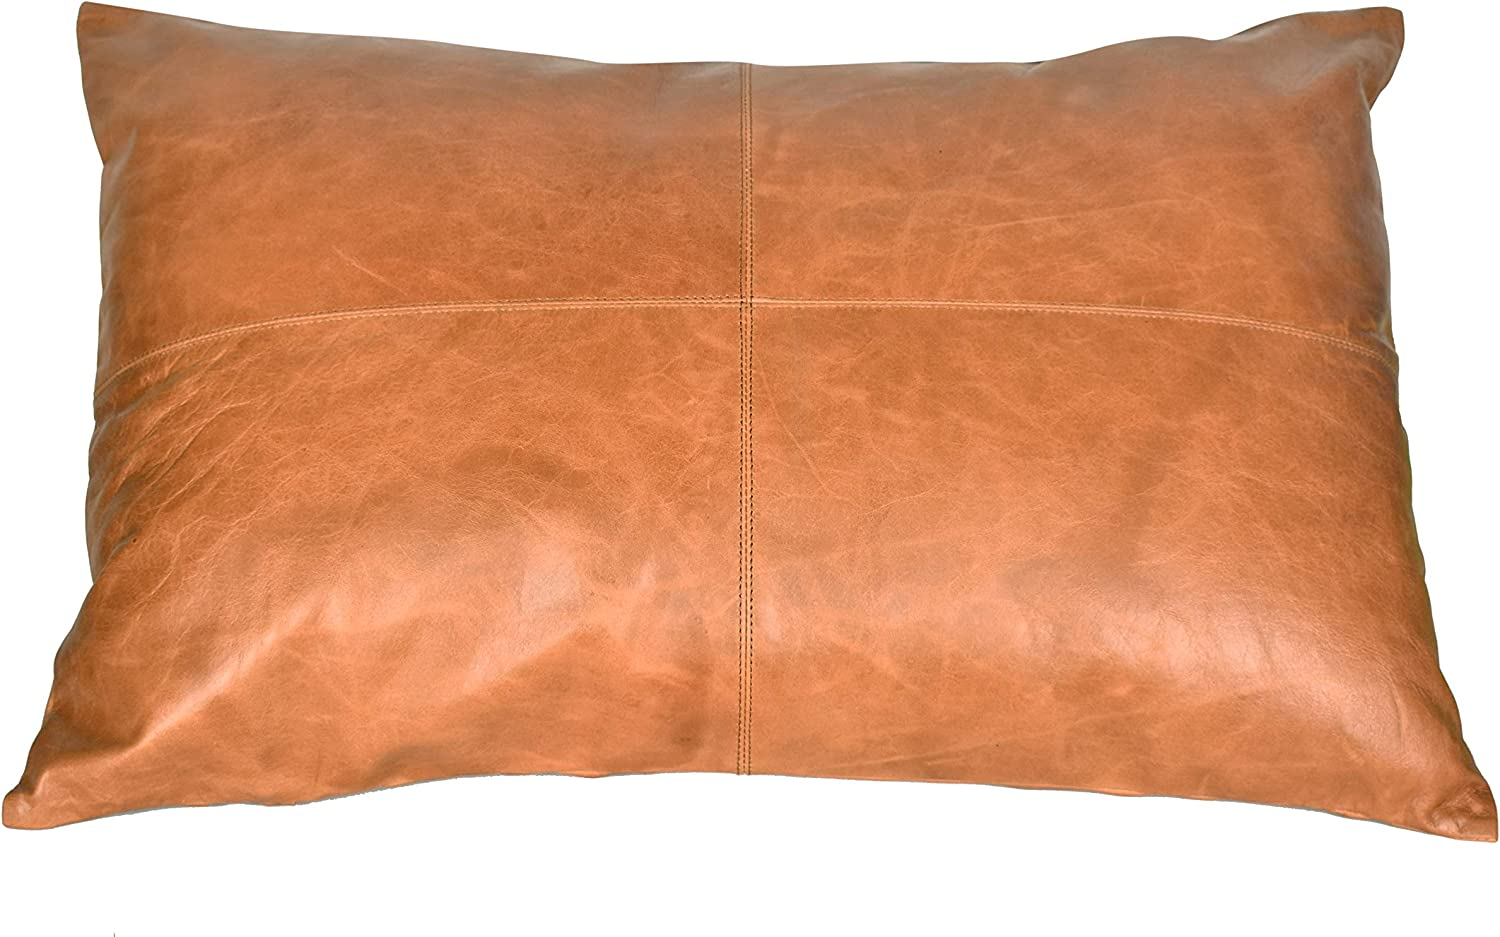 Azrah Traders 100% Lambskin Leather New arrival Sofa Pillow Cover Cushion - Minneapolis Mall